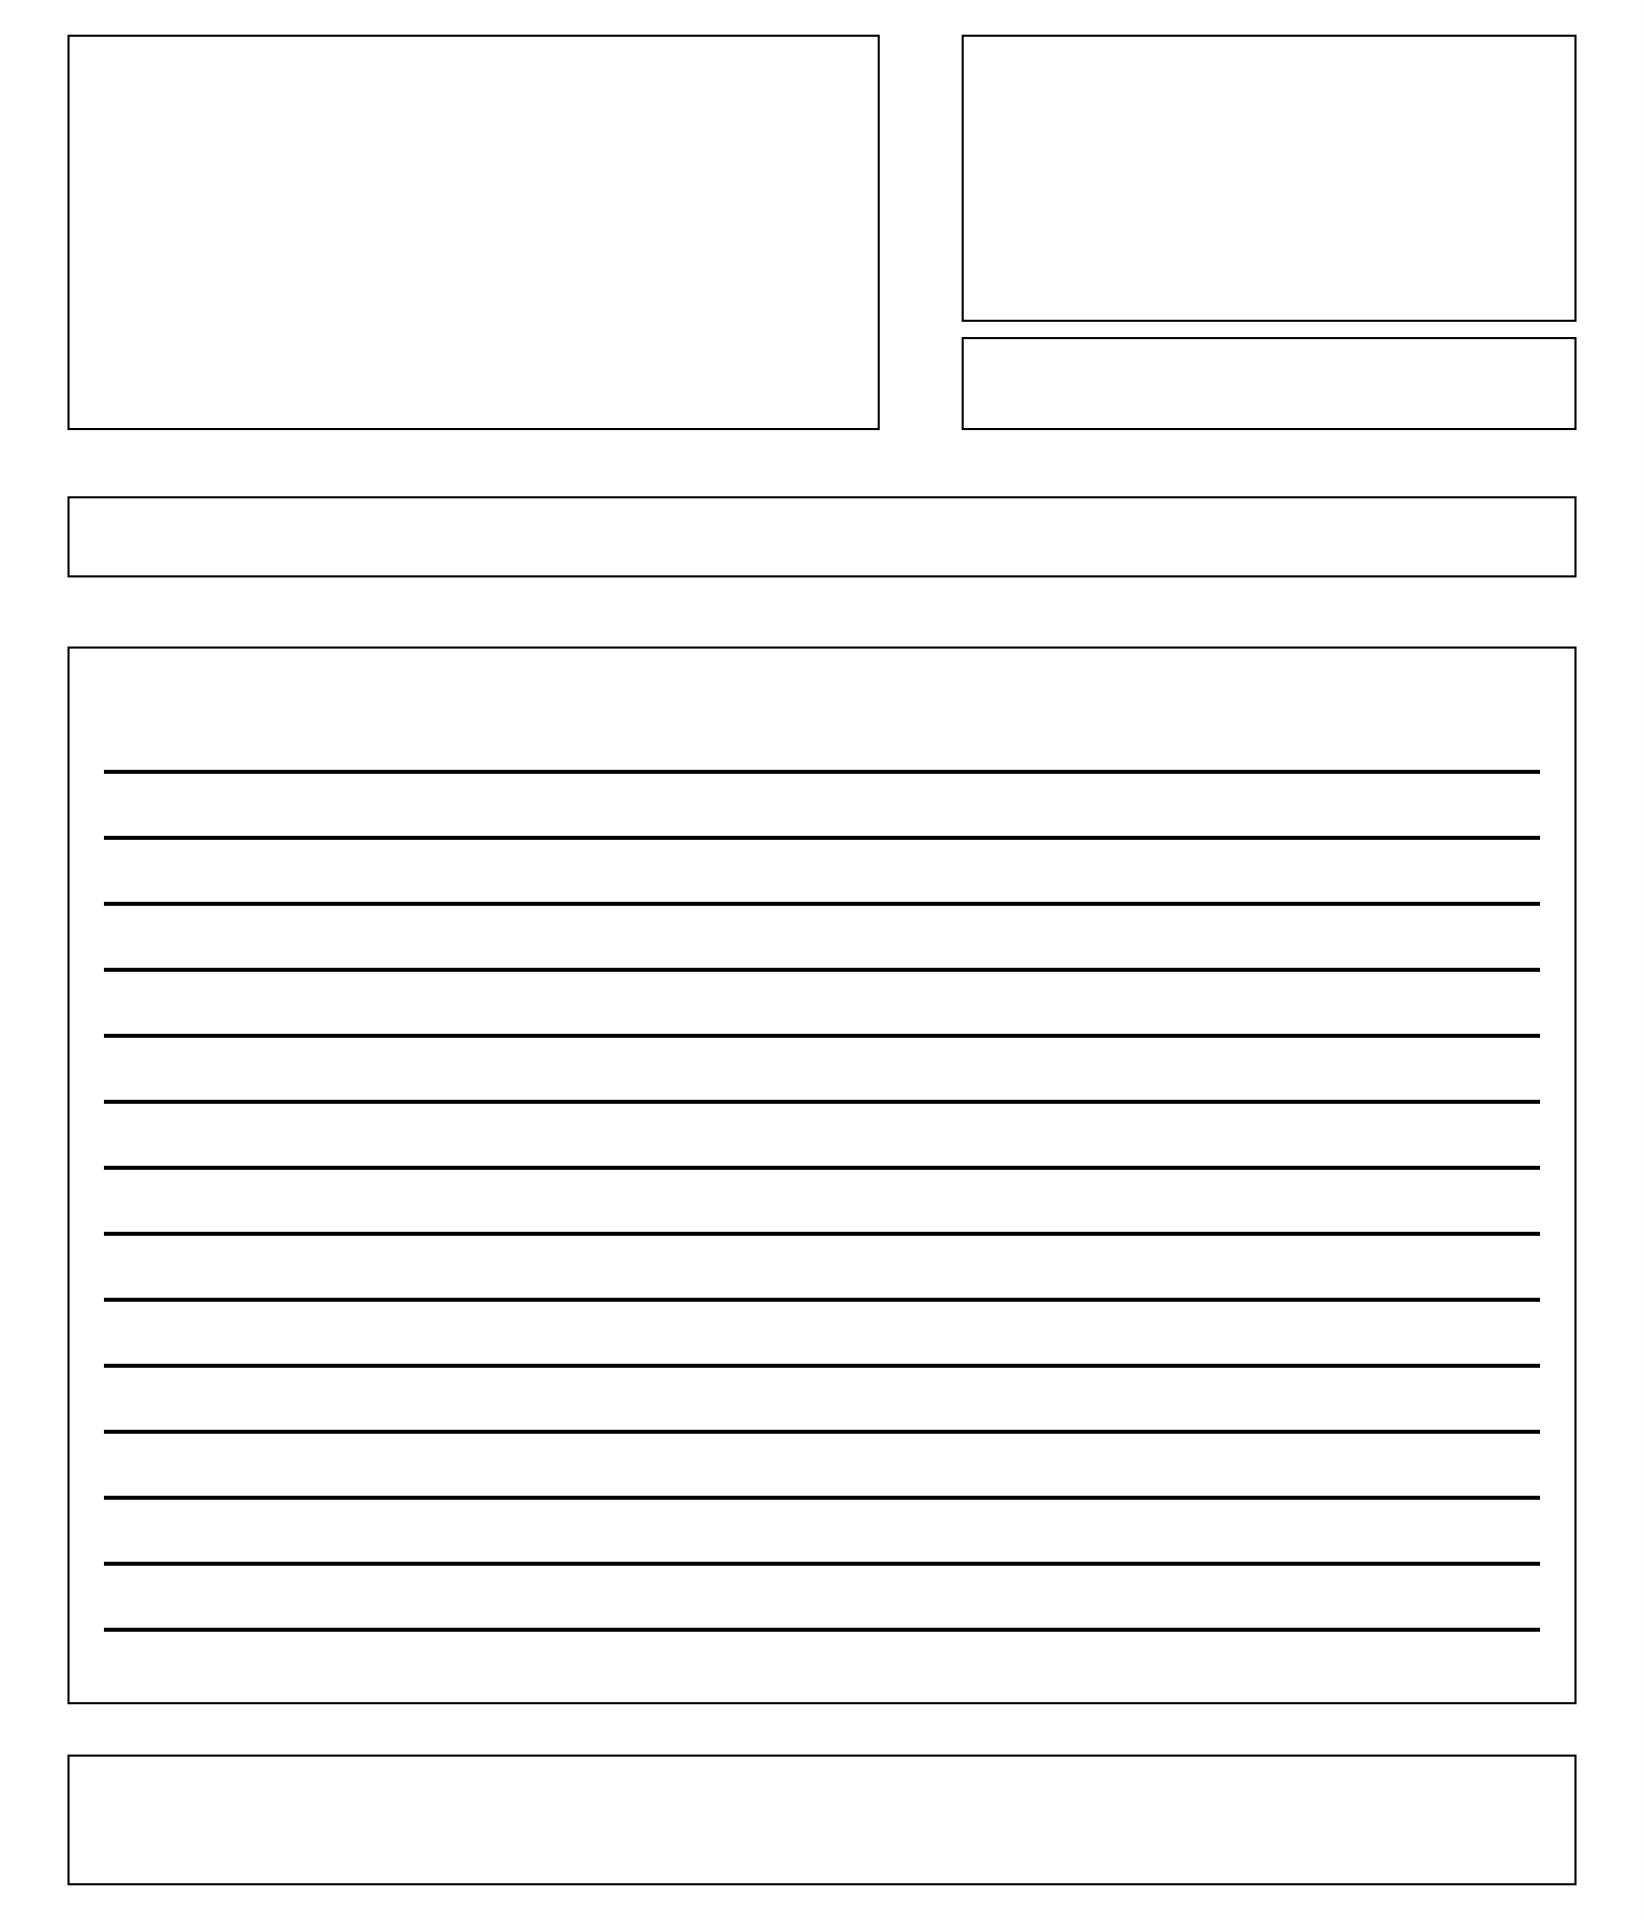 photograph relating to Letter Writing Template for Kids identified as Blank Creating Template. simplest pics of blank handwriting